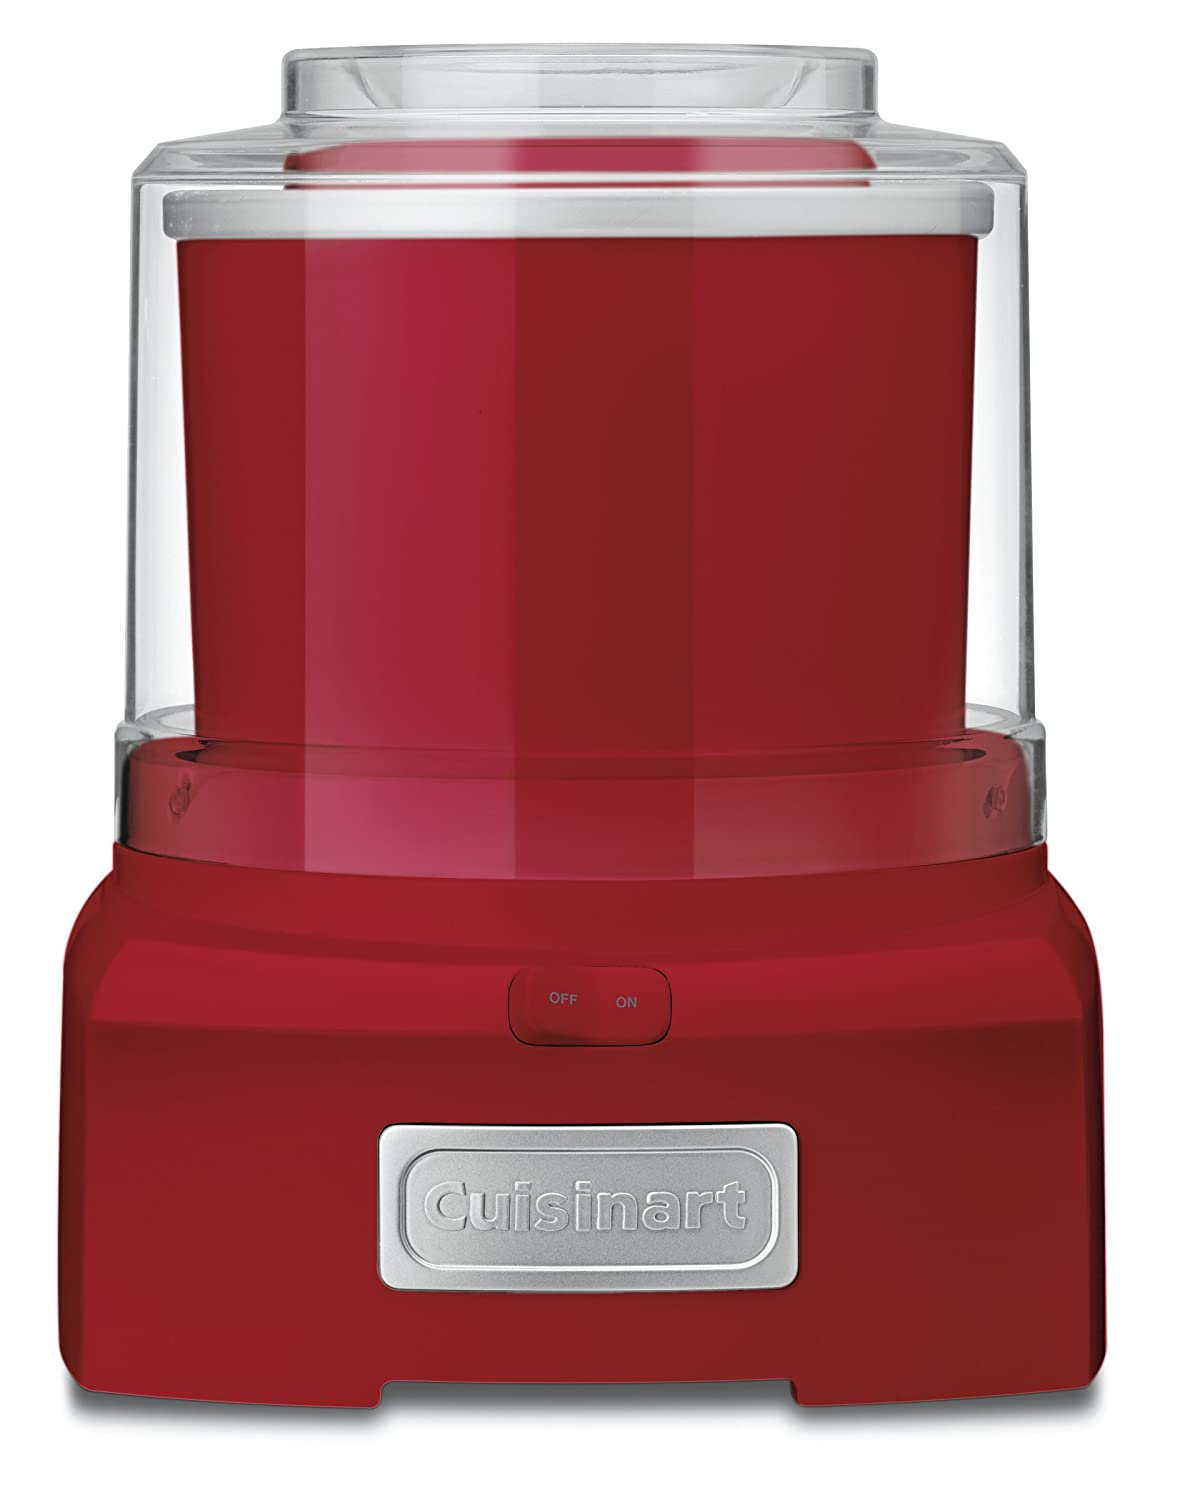 Cuisinart Frozen Yogurt, Ice Cream and Sorbet Maker Red